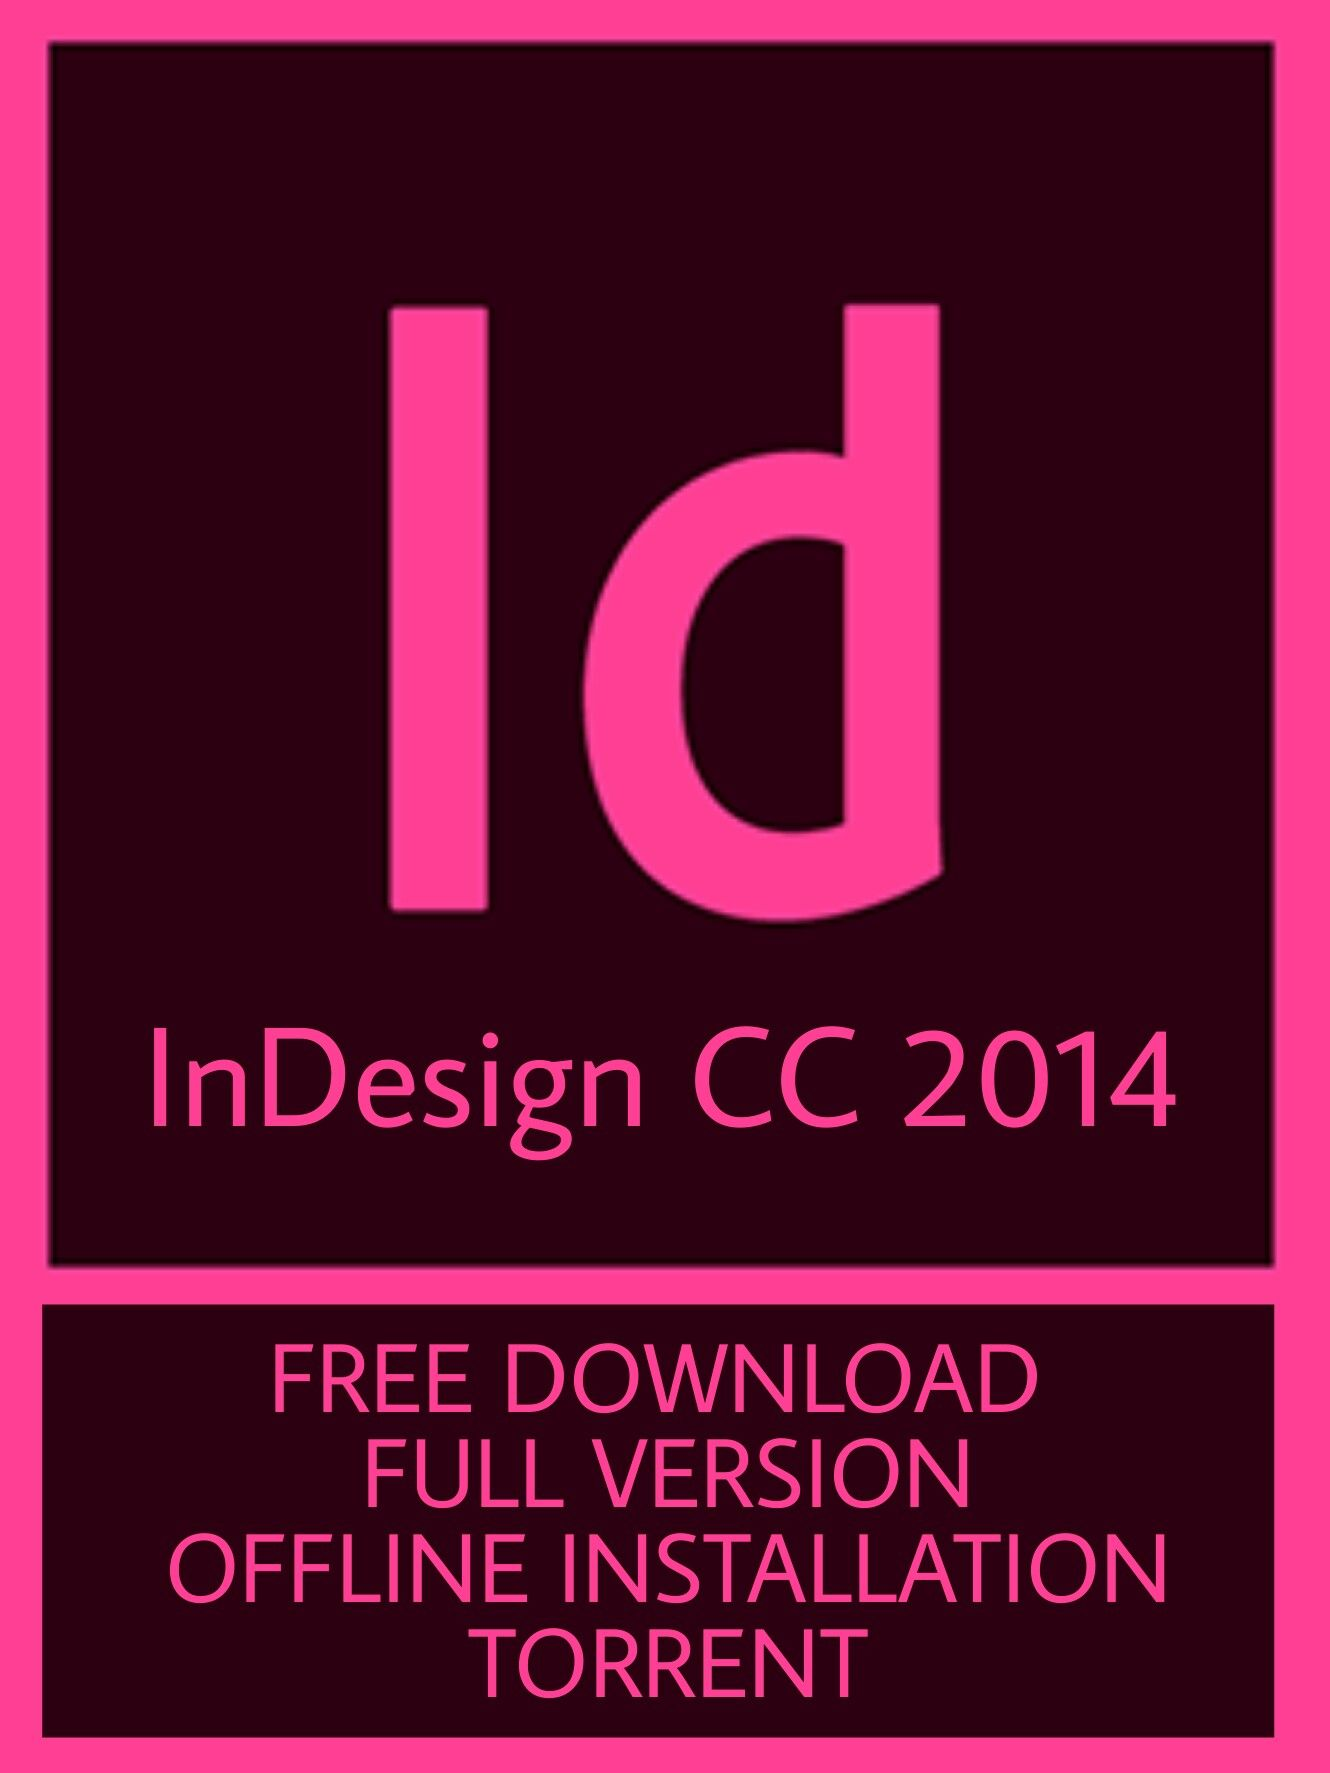 How to free download adobe indesign cc 2014 for windows with torrent ...